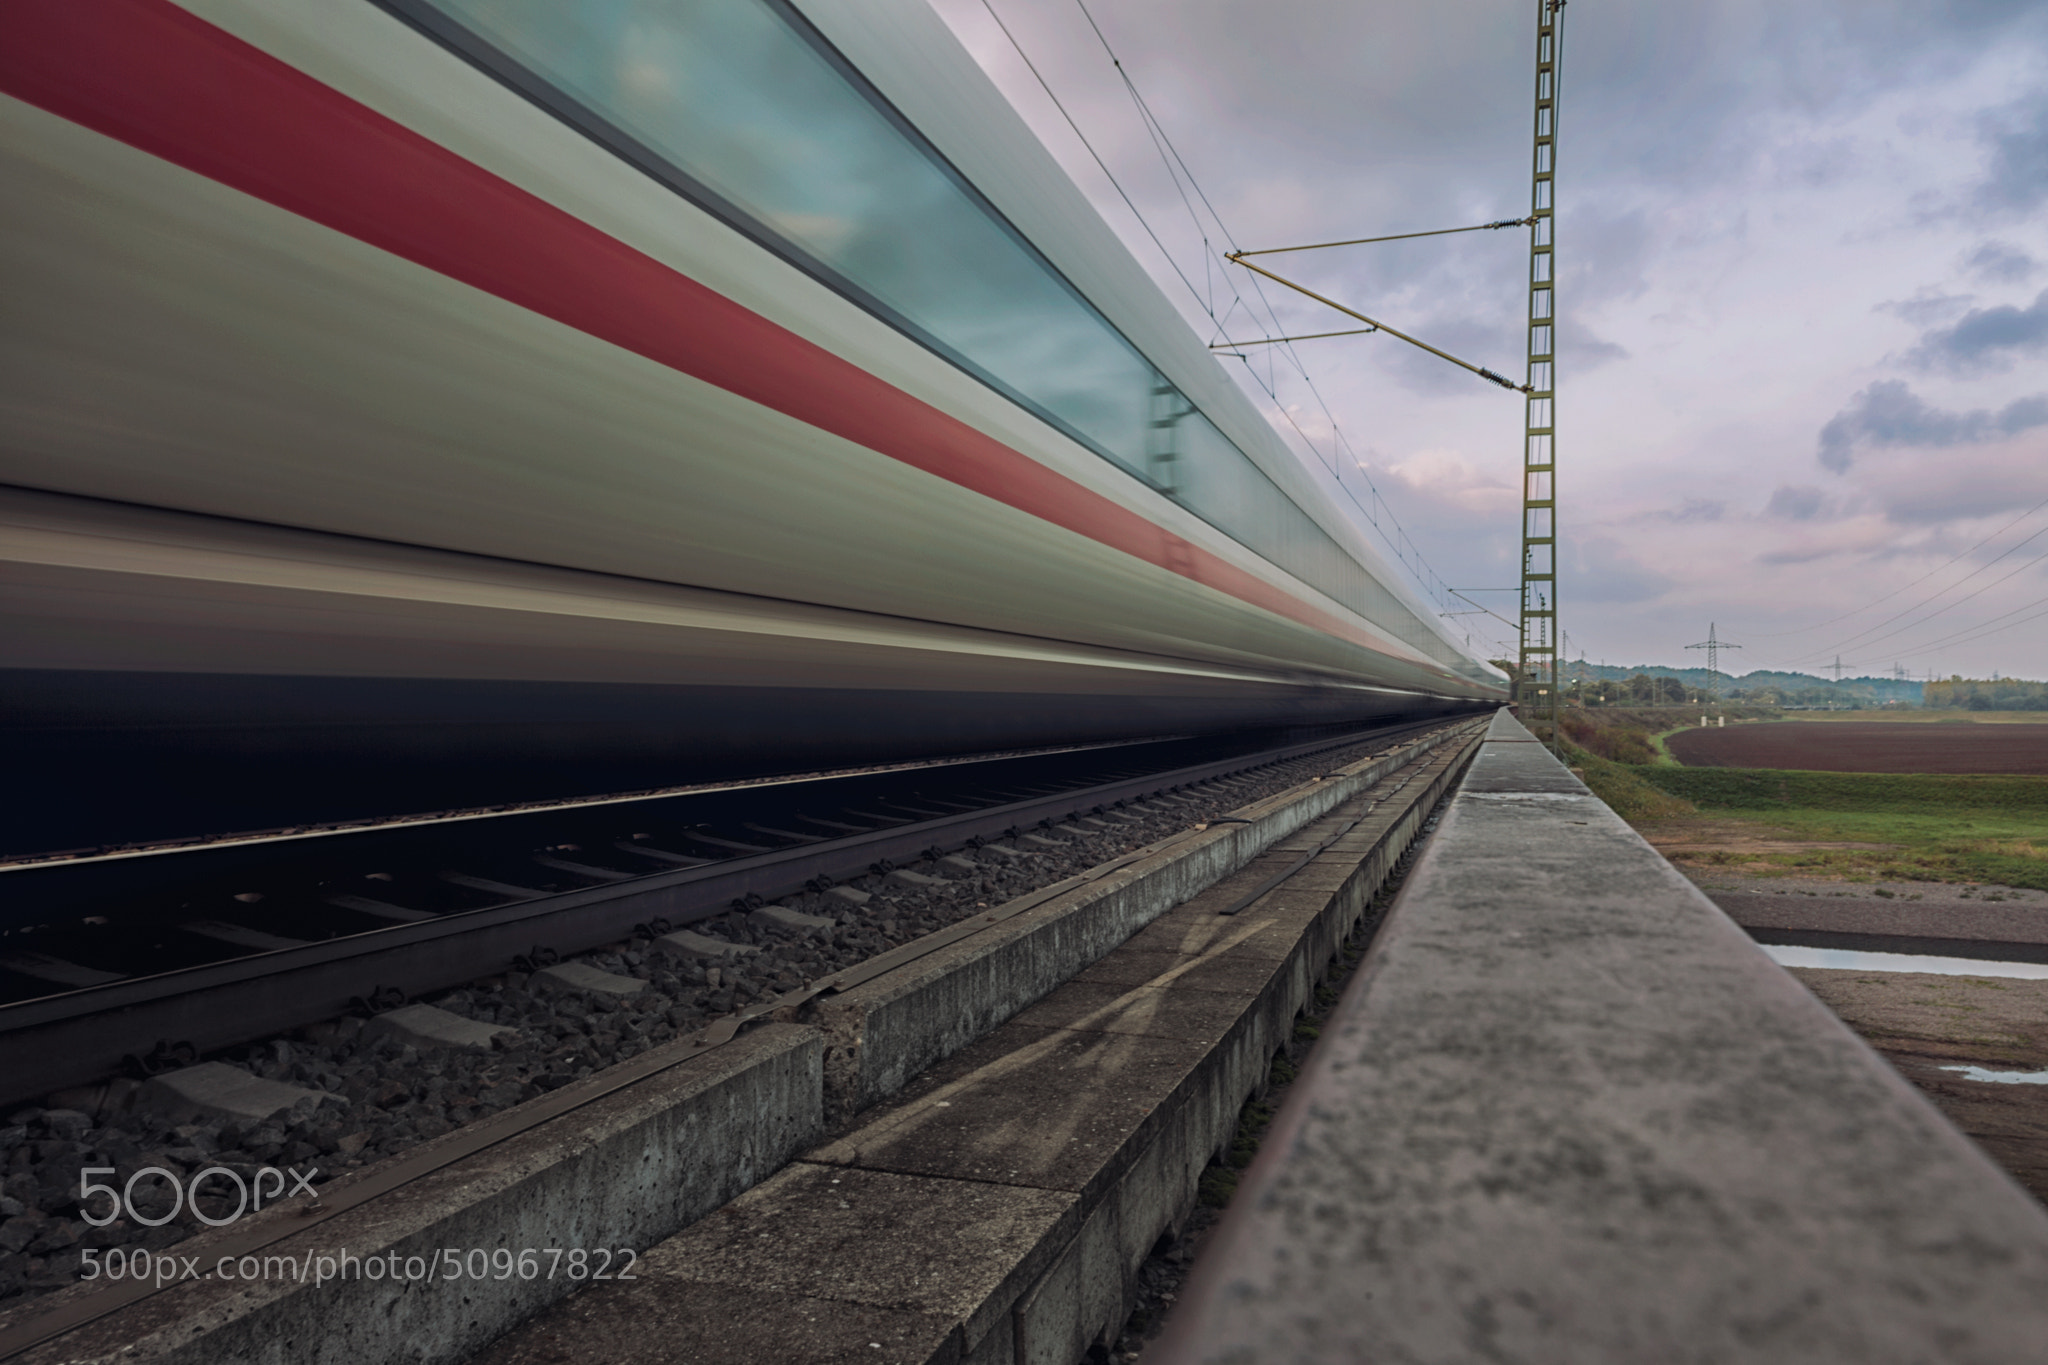 Photograph train by Christian Richter on 500px